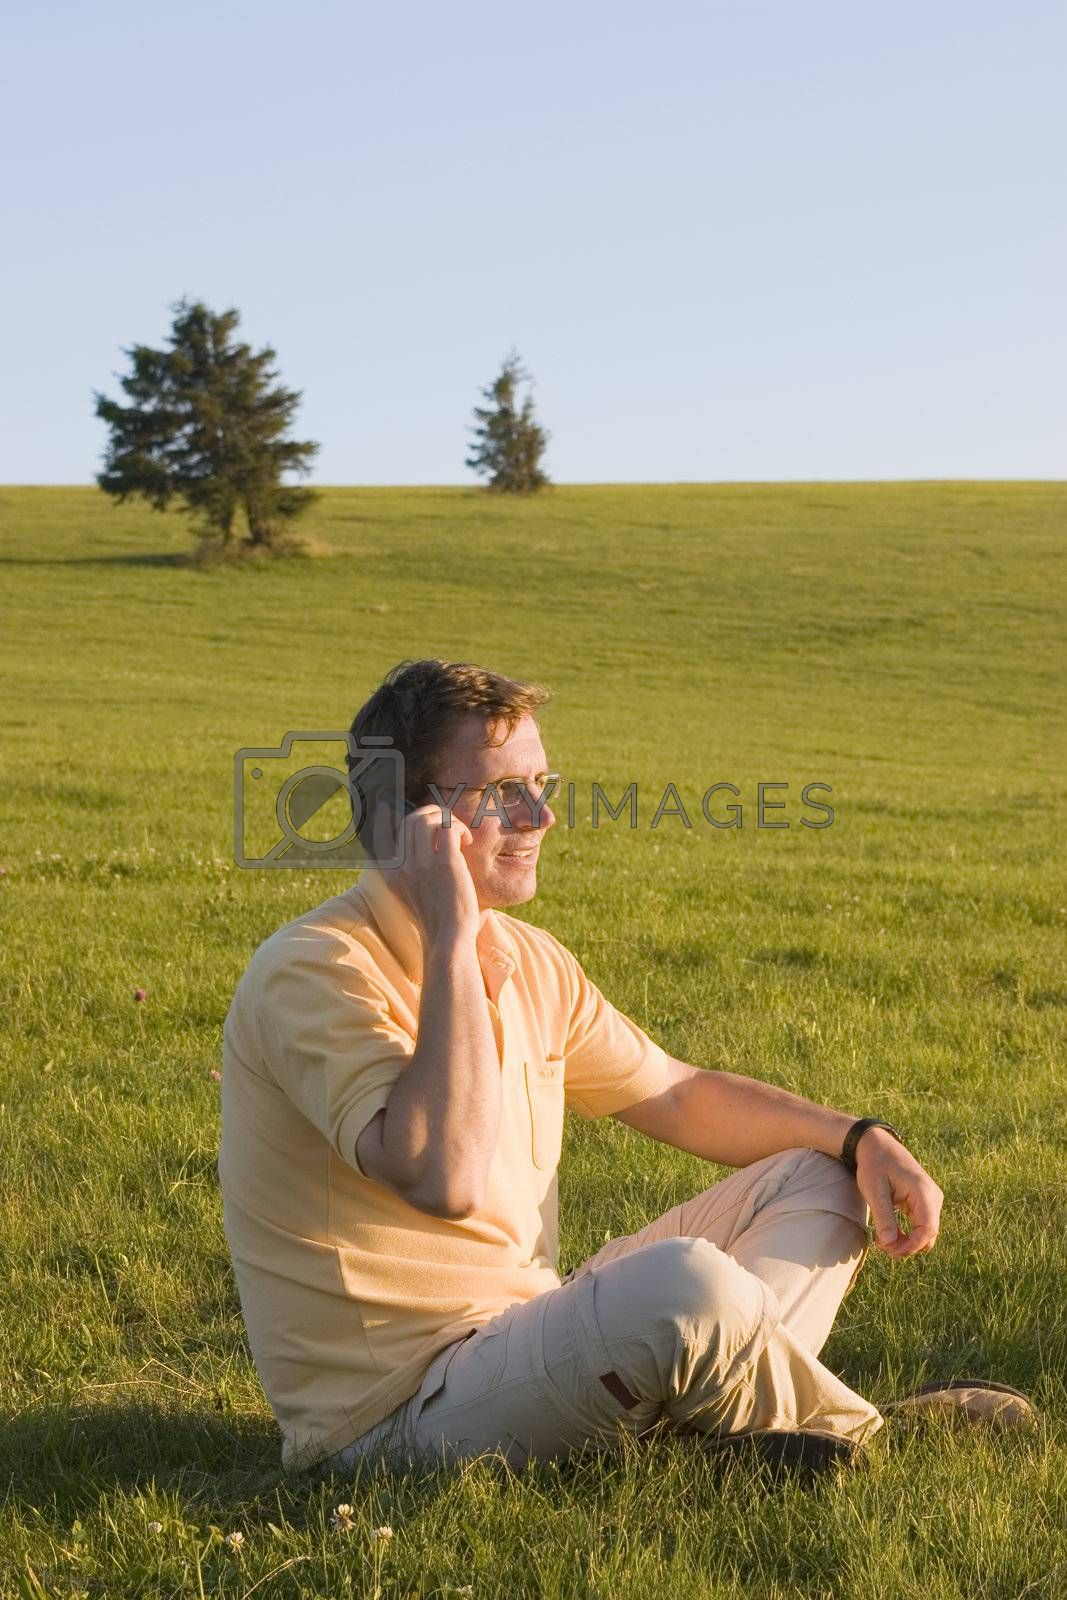 Man with cell phone talking while sitting in a meadow at sunset/sunrise